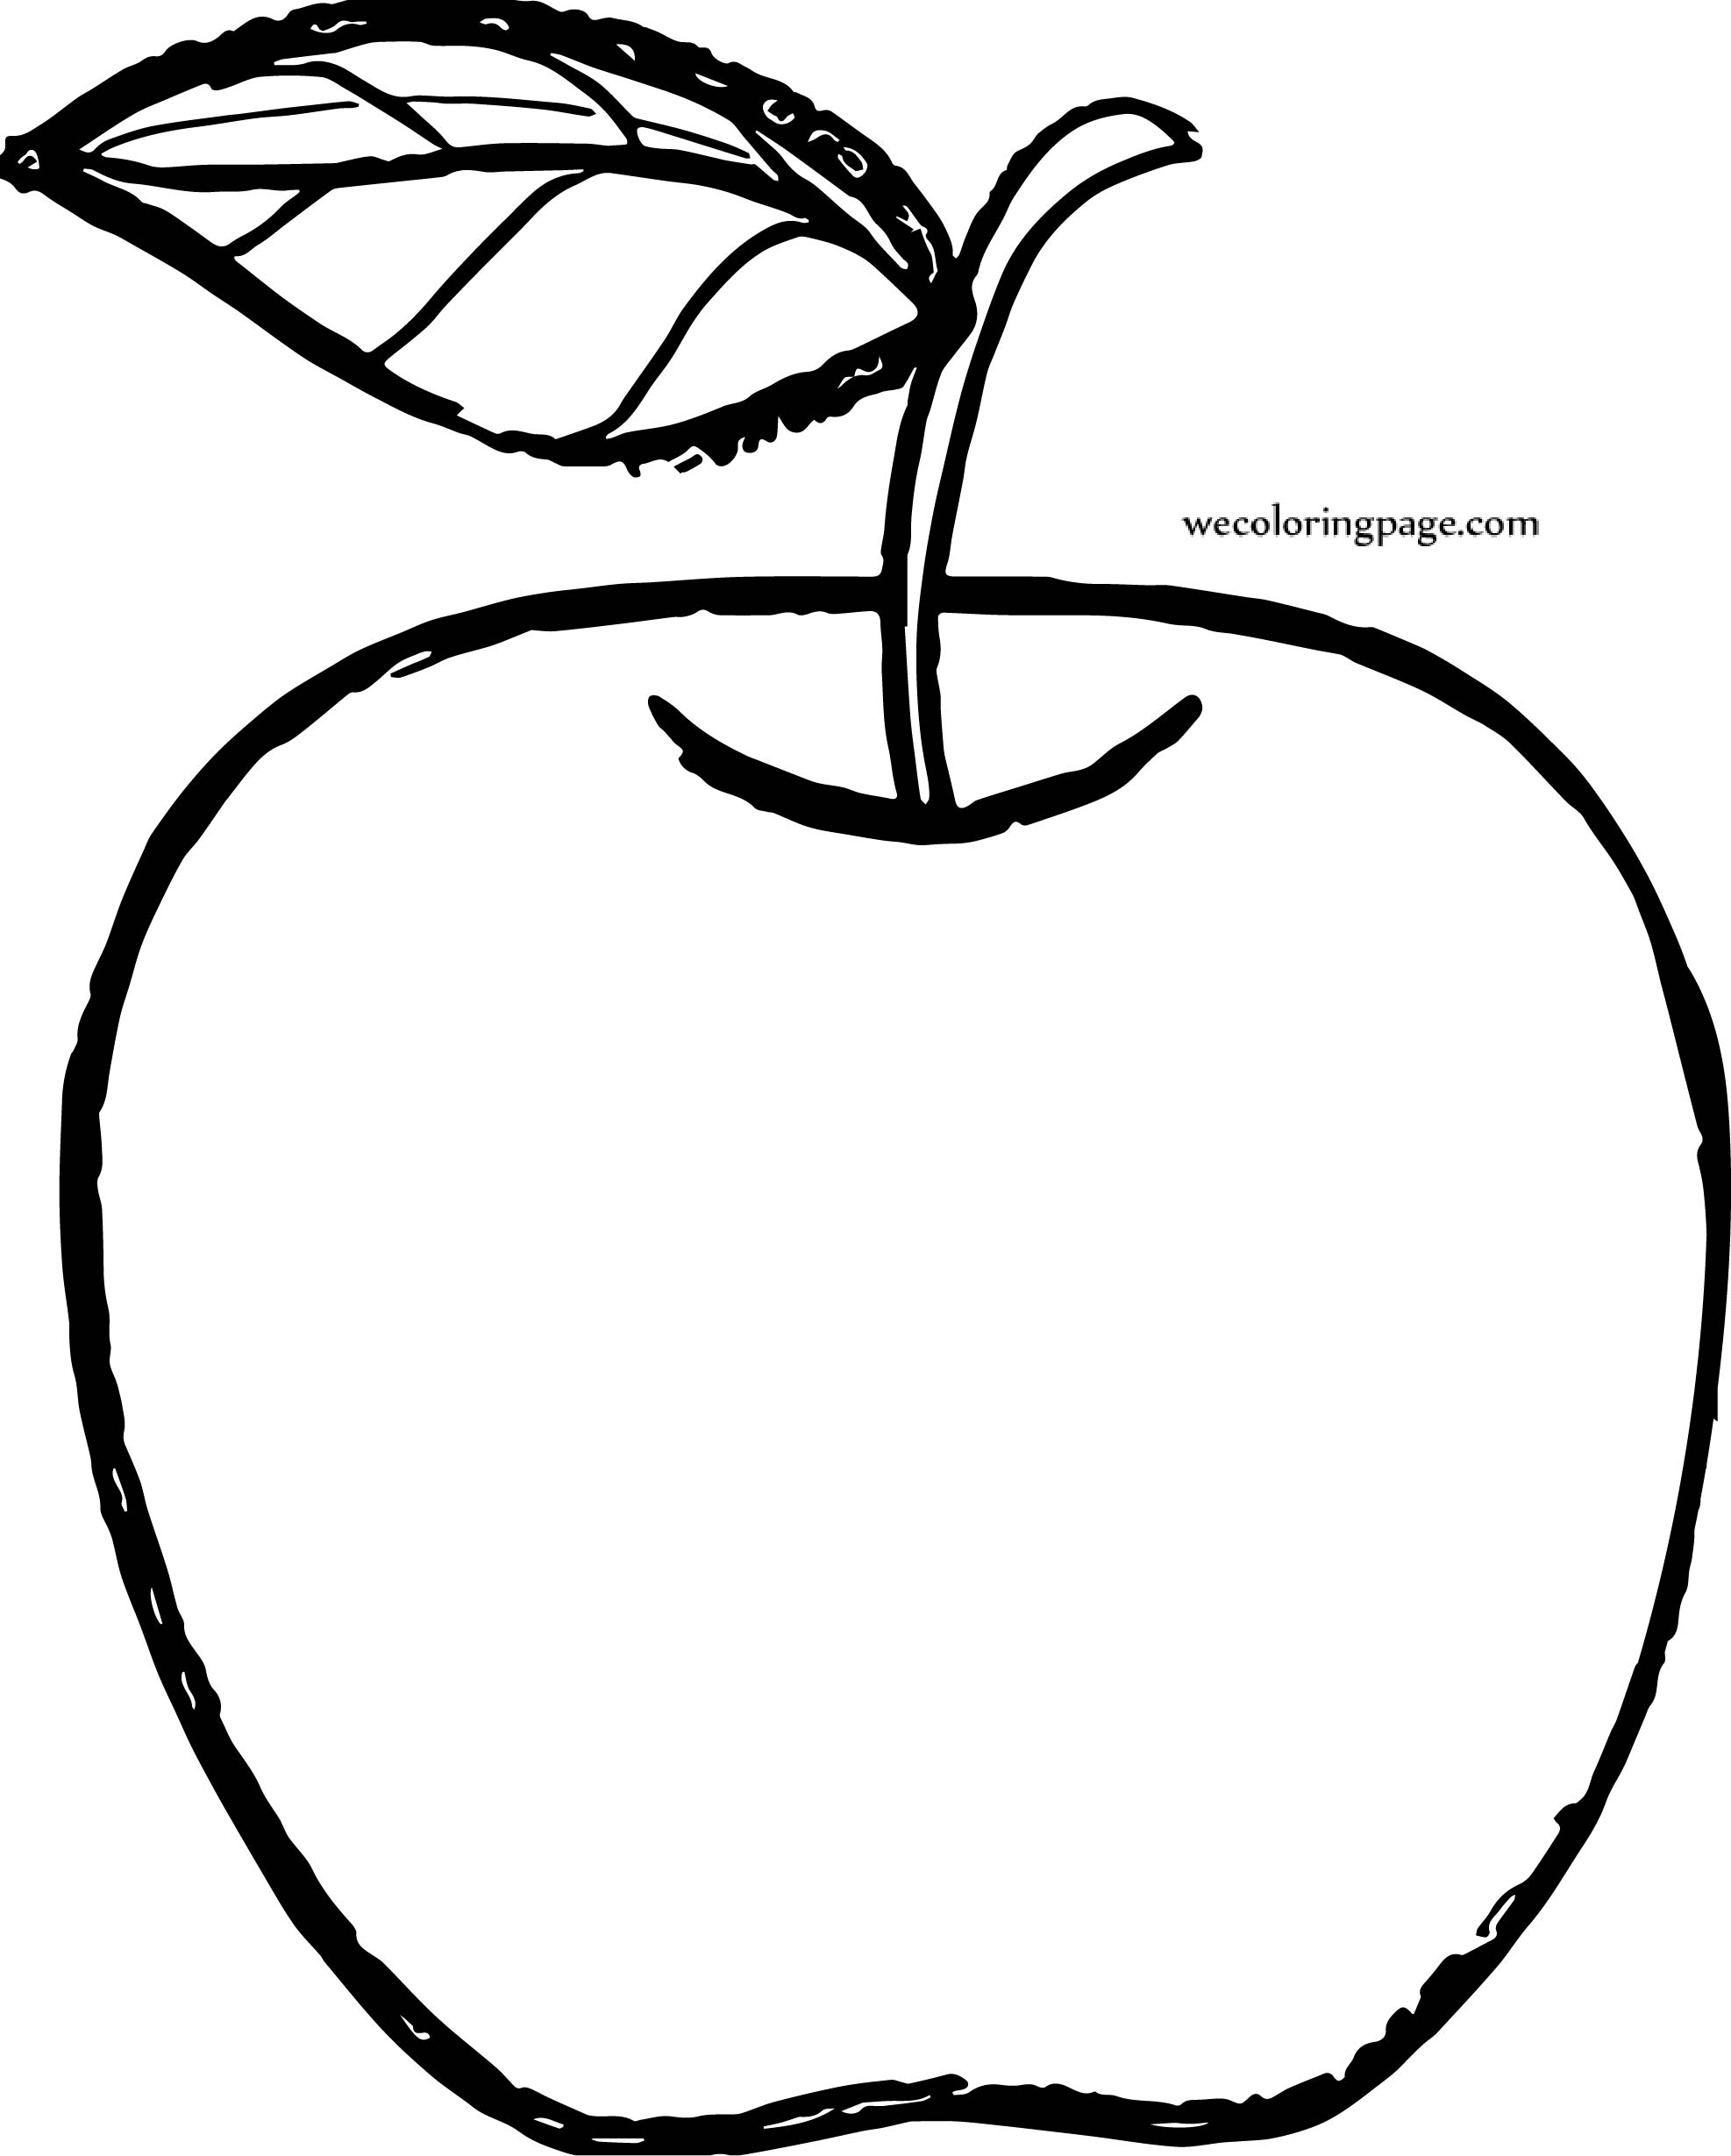 Apple Computer Coloring Pages : Apple draw coloring page wecoloringpage